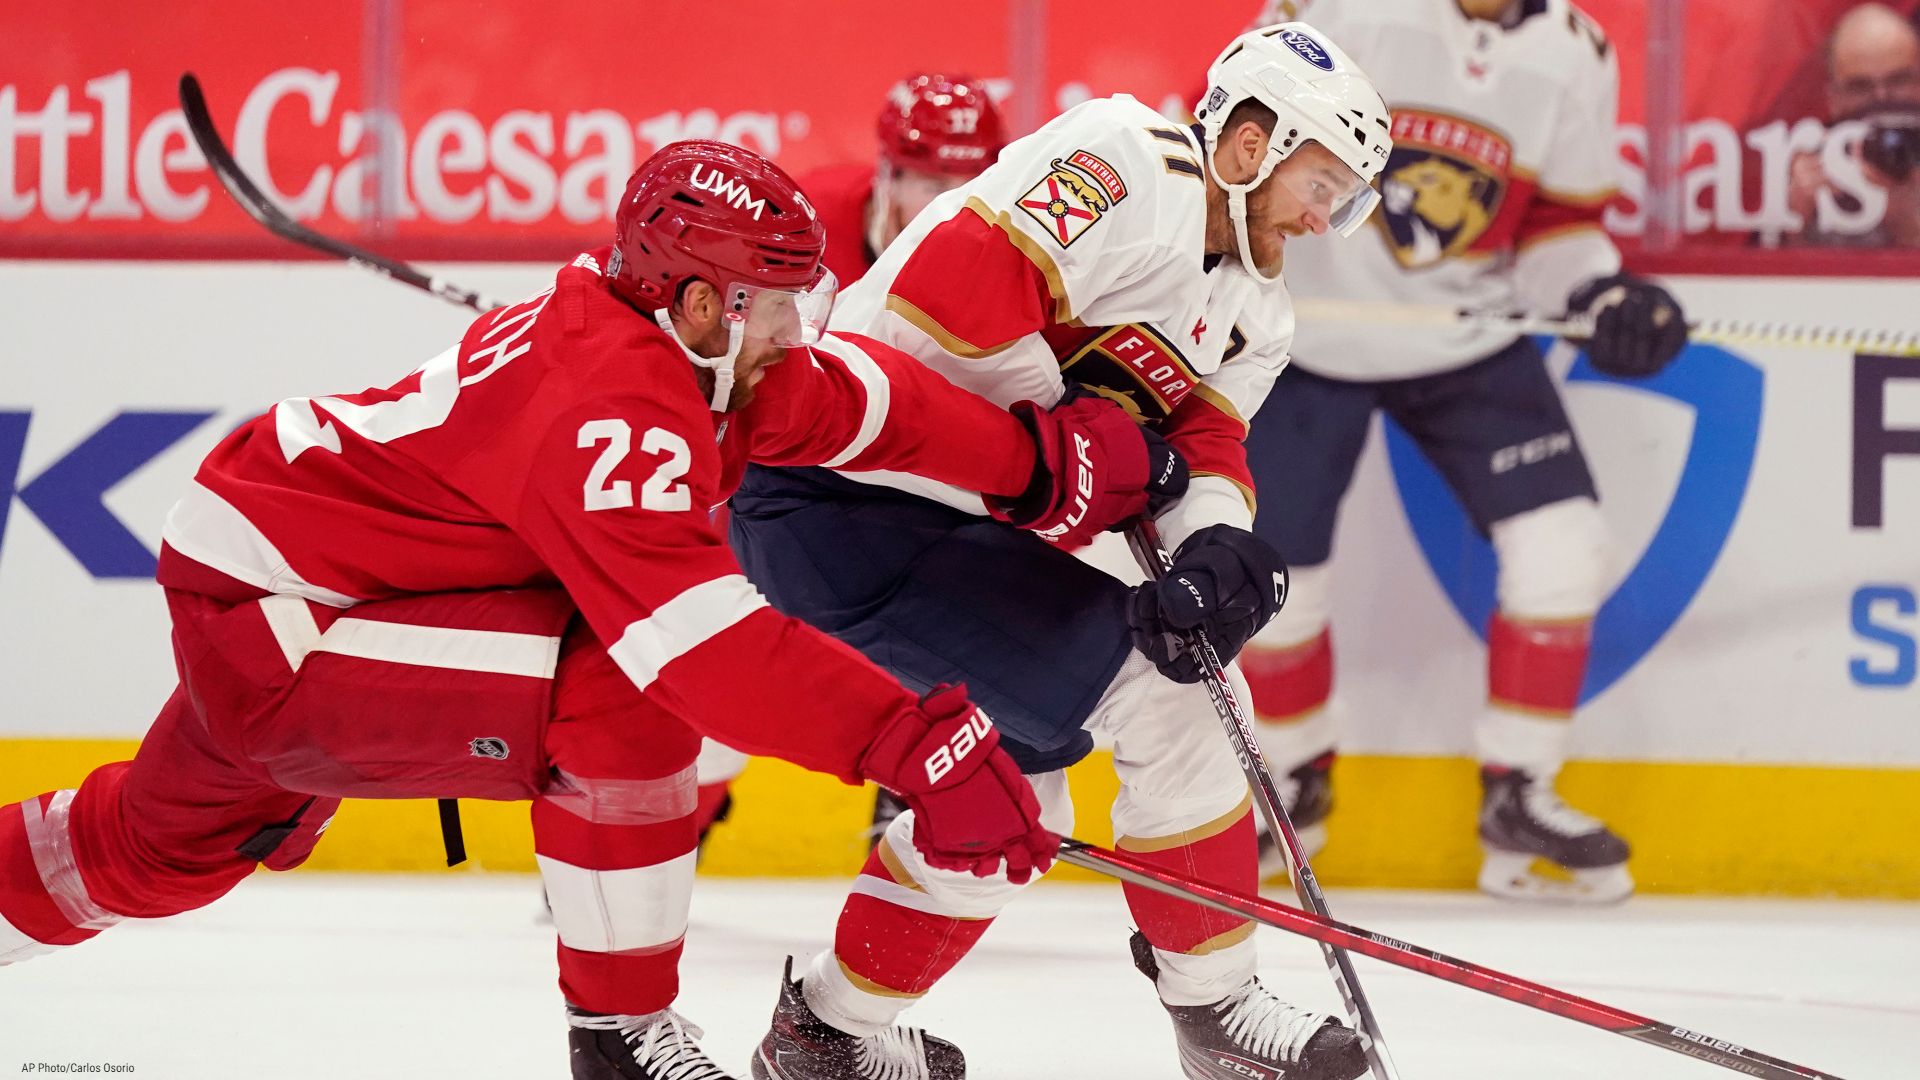 Detroit Red Wings defenseman Patrik Nemeth (22) and Florida Panthers left wing Jonathan Huberdeau (11) chase the puck during the first period of an NHL hockey game, Saturday, Jan. 30, 2021, in Detroit. (AP Photo/Carlos Osorio)